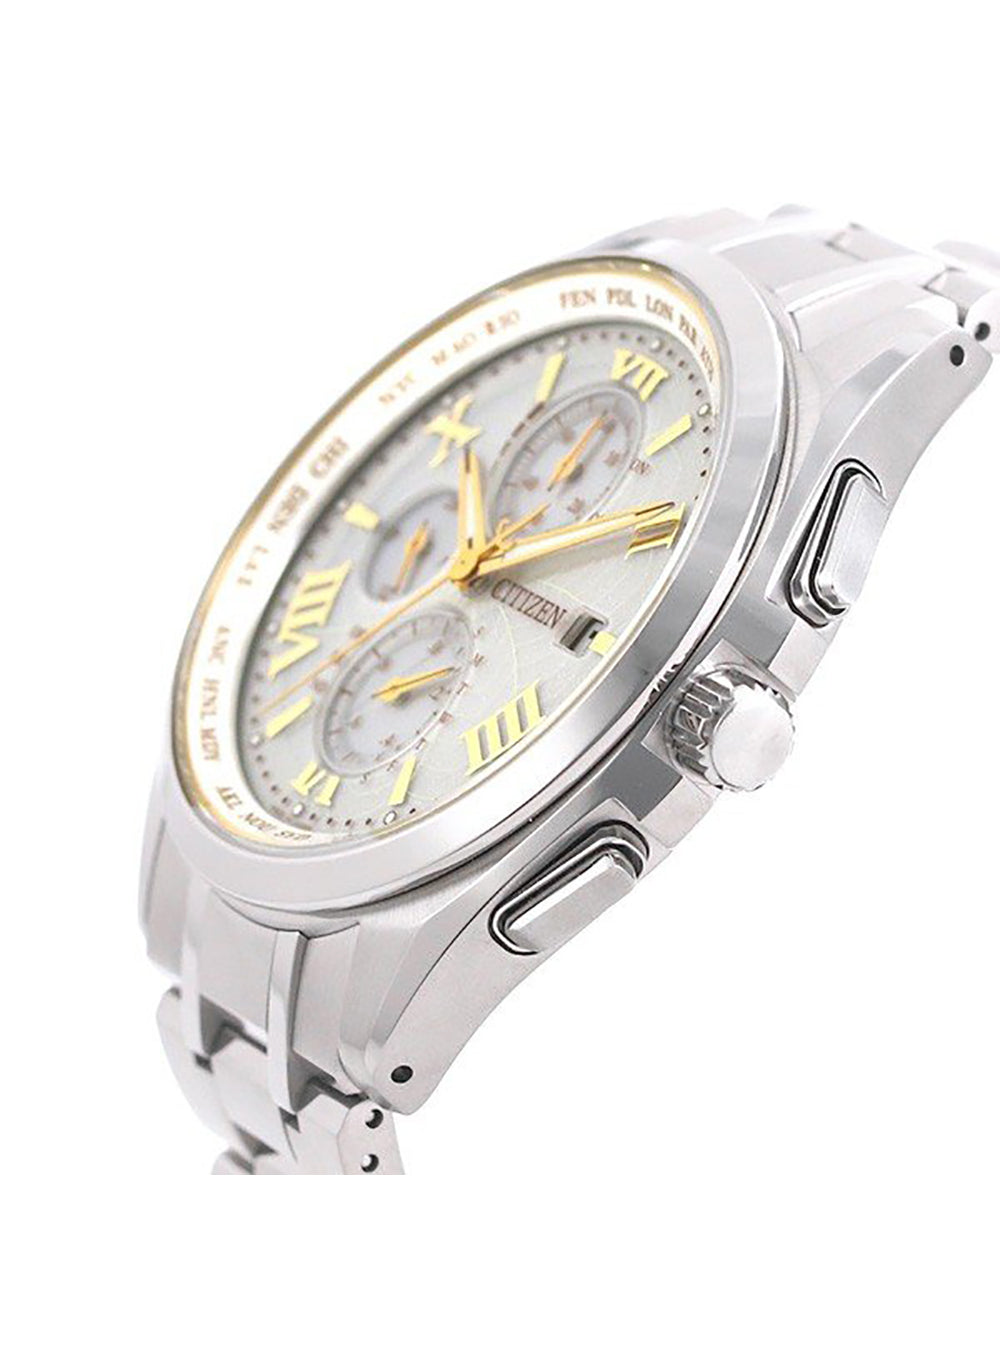 CITIZEN ATTESA LIMITED MODEL AT8041-62A MADE IN JAPAN JDM (Japanese Domestic Market)